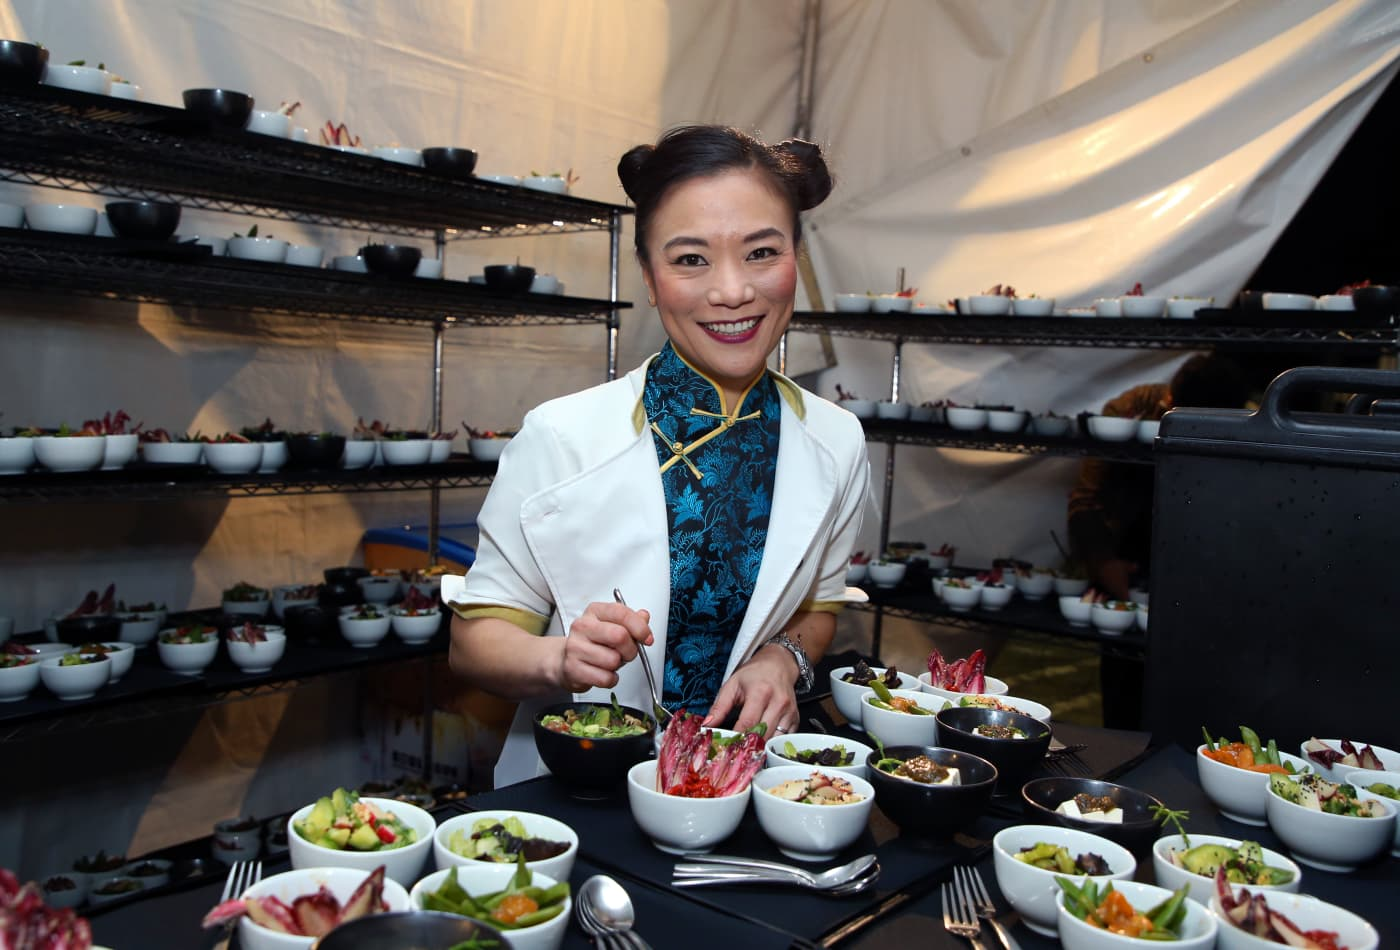 Shirley Chung of 'Top Chef' pivoted her business and became a voice against anti-Asian hate